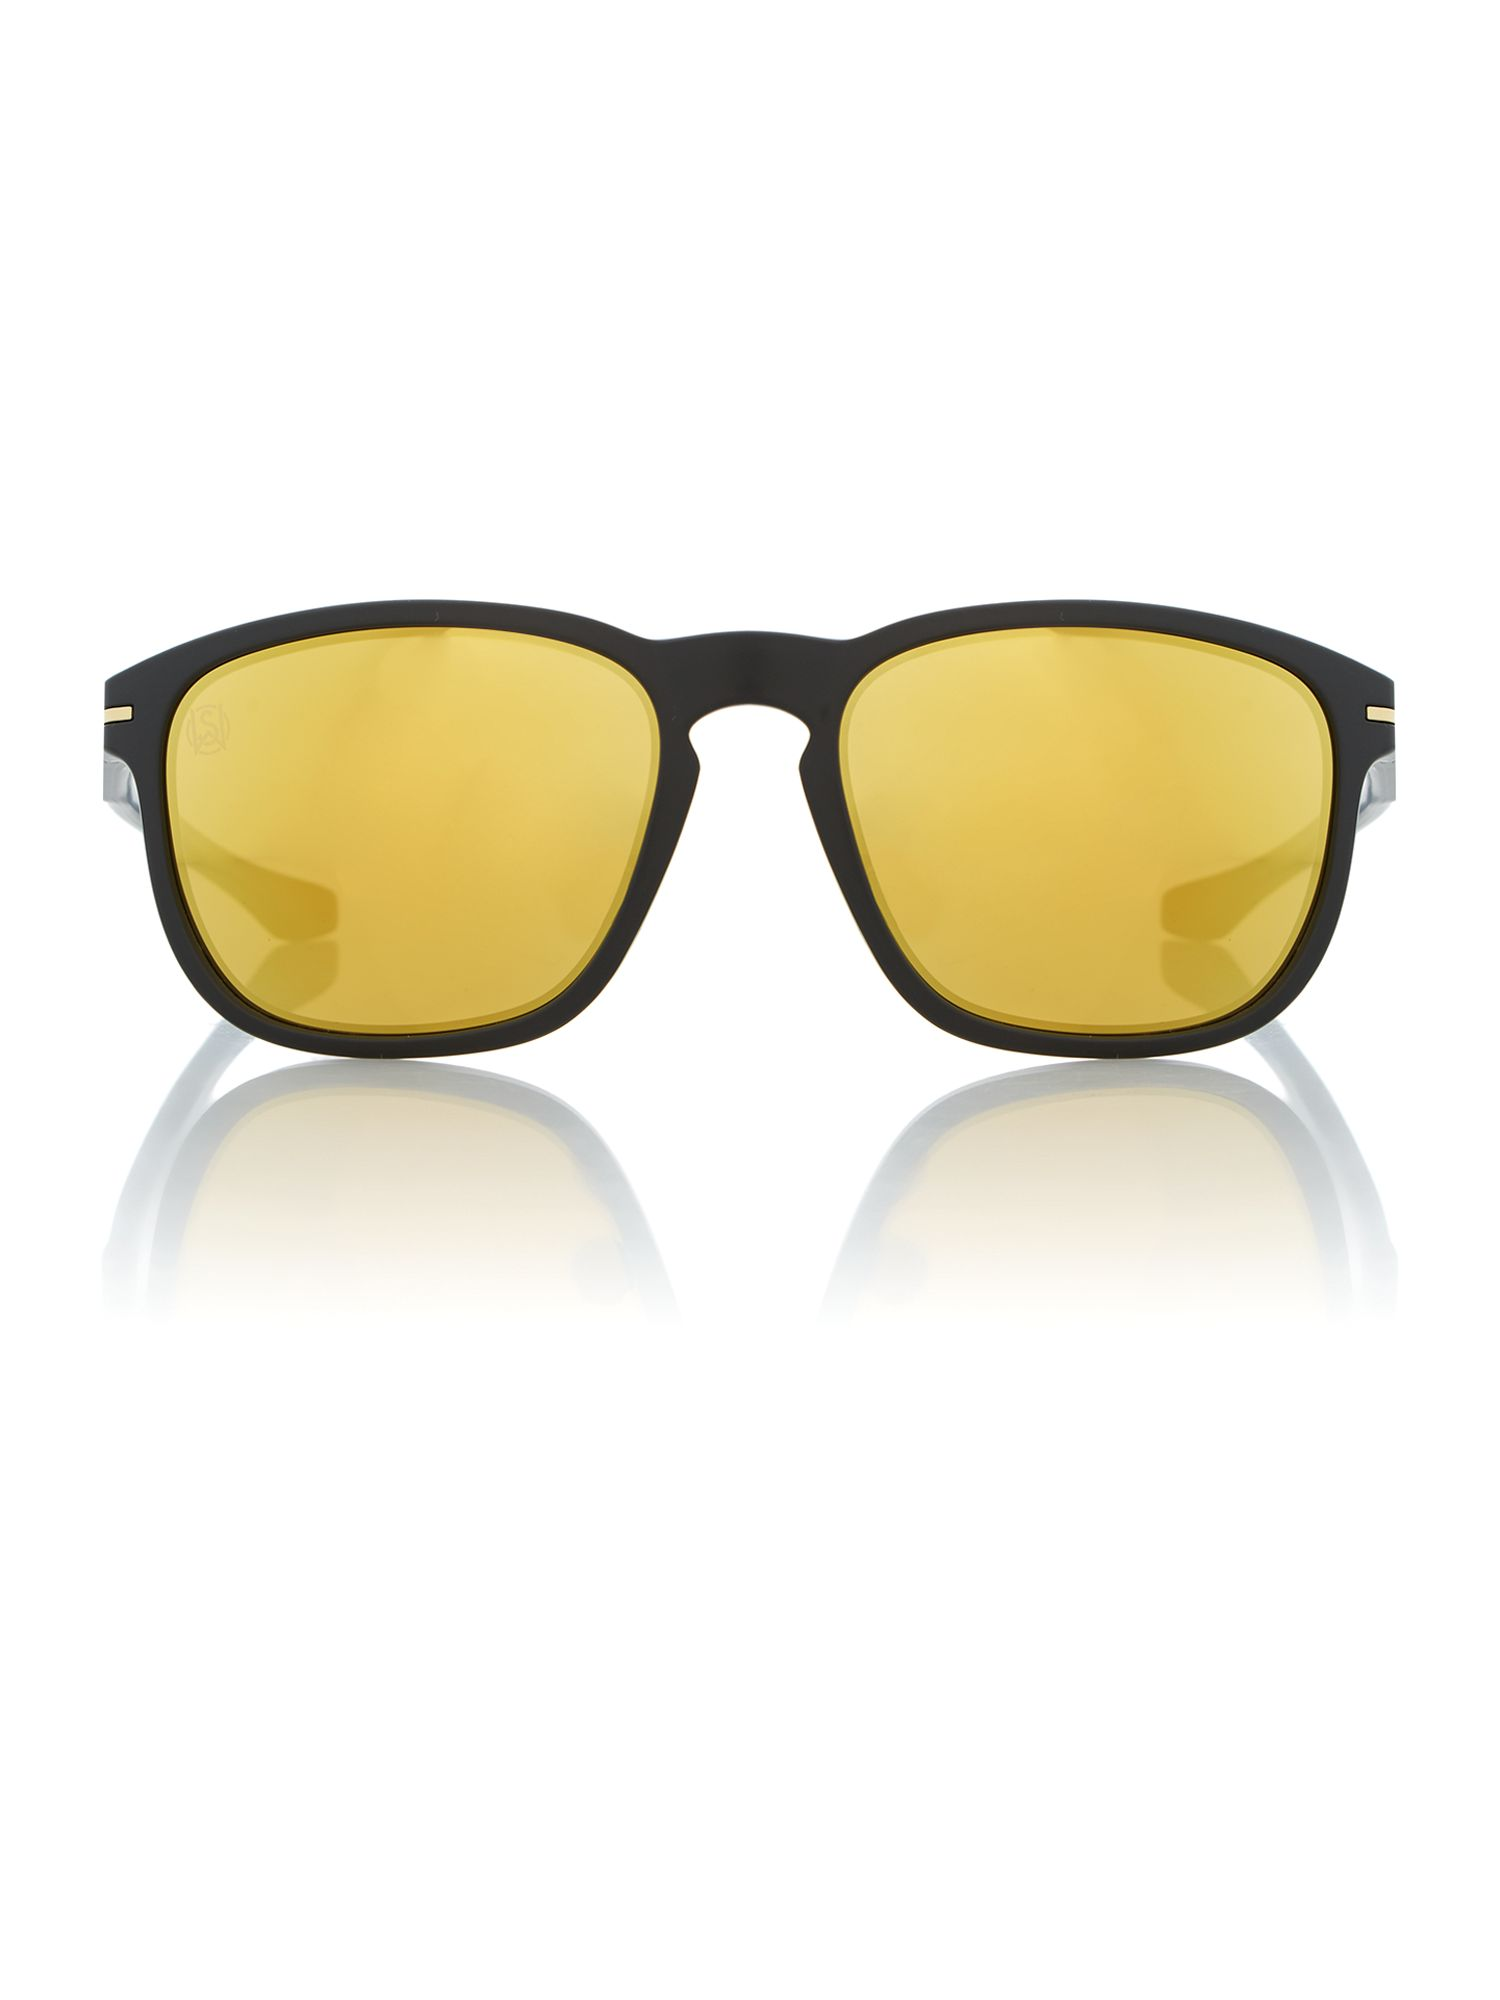 Black ink oval sunglasses